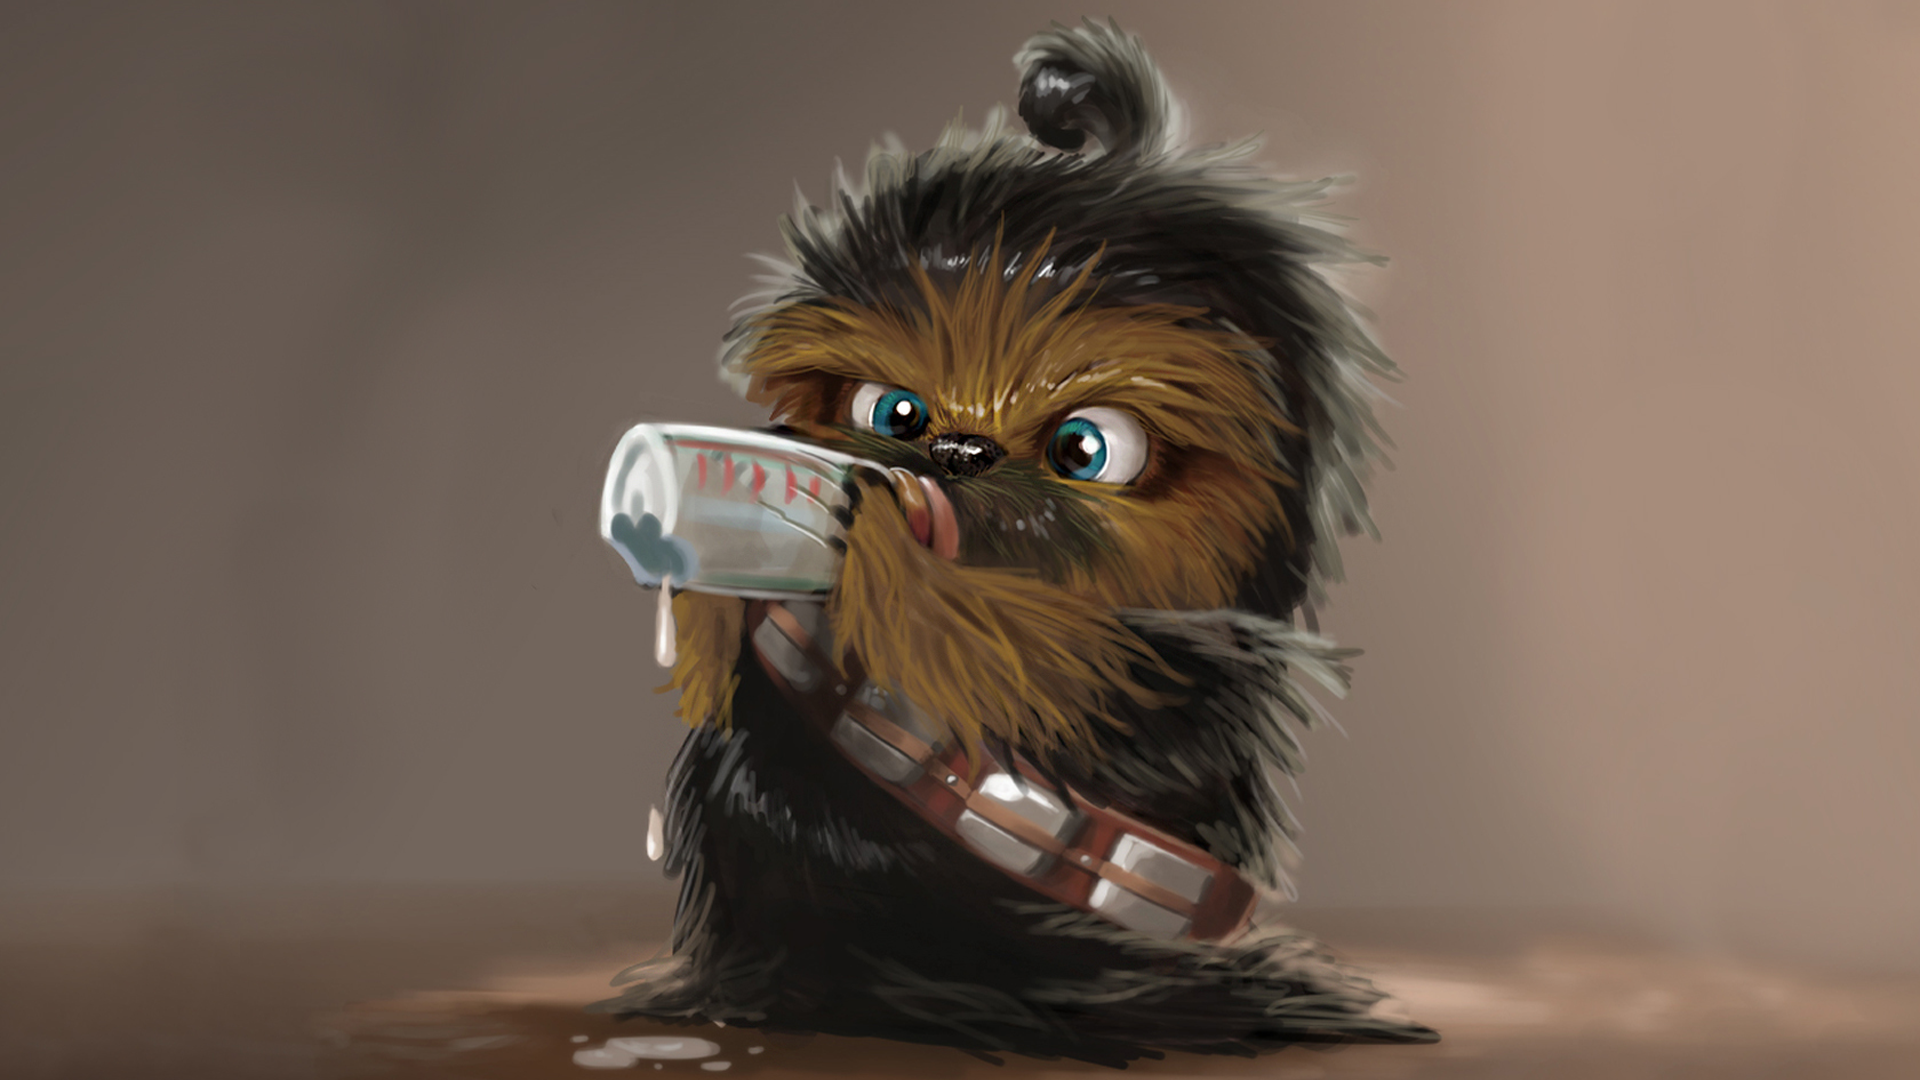 baby-chewbacca-hd-wallpaper